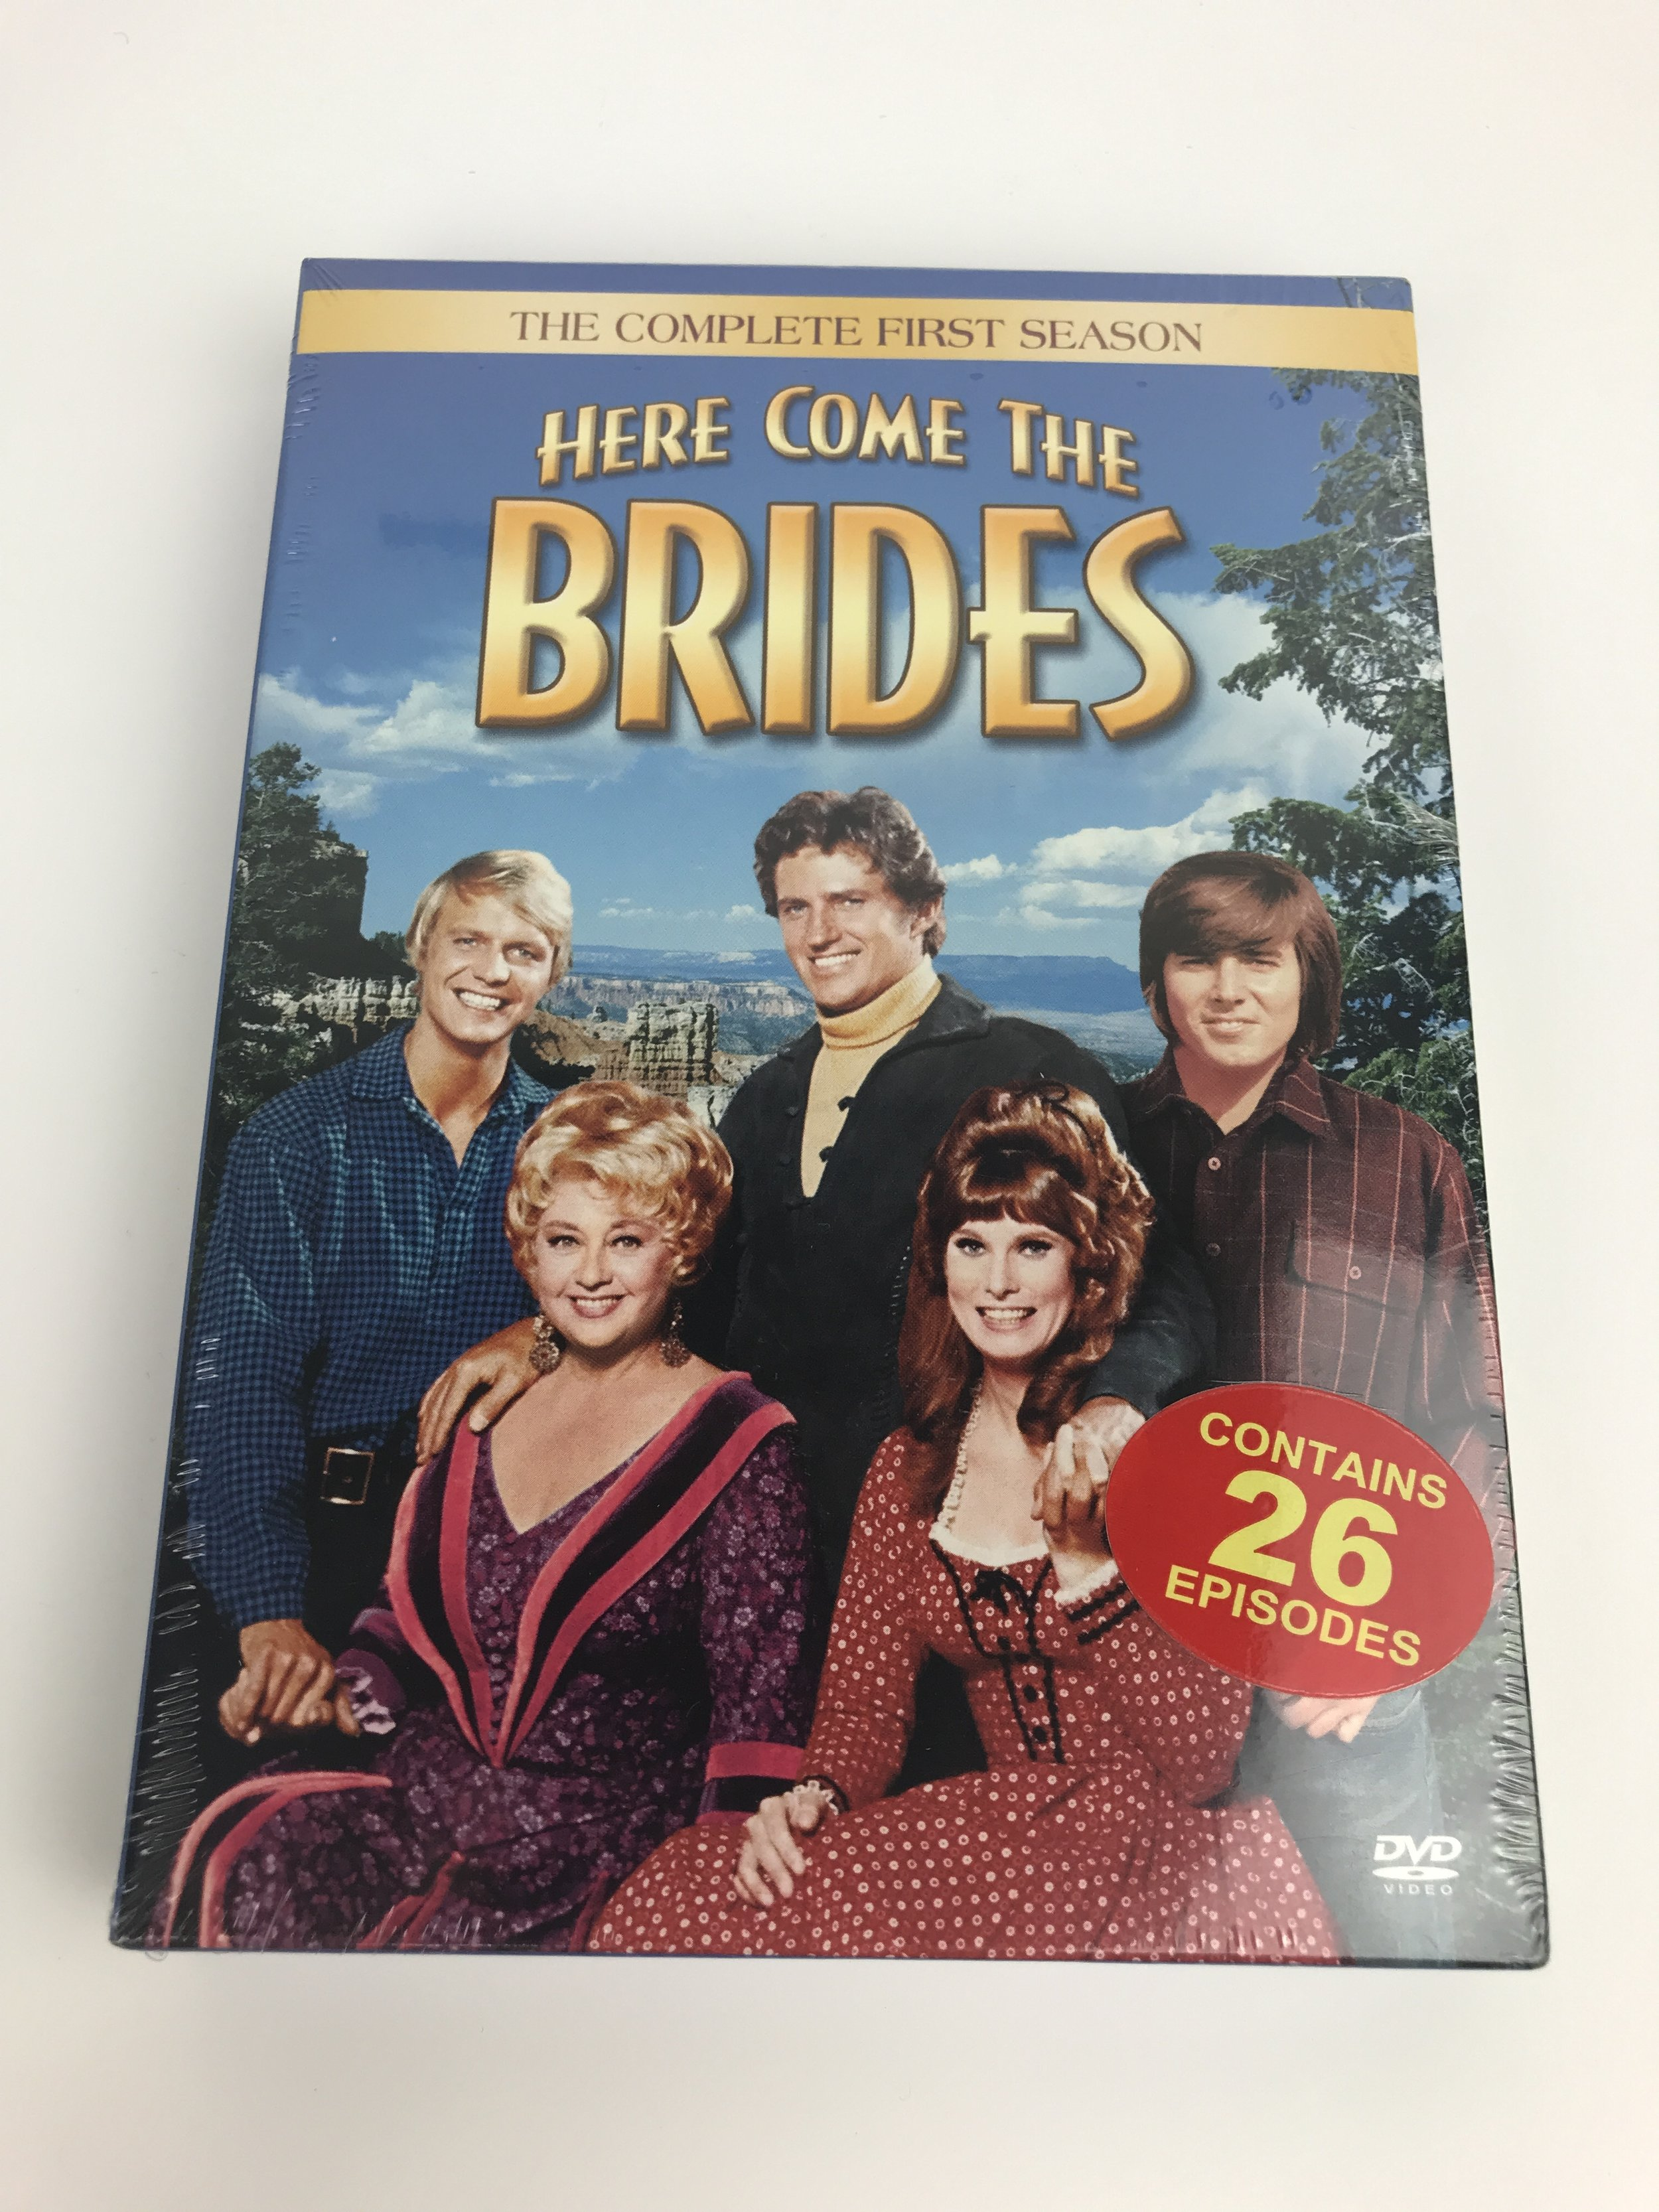 Here Come the Brides DVD set